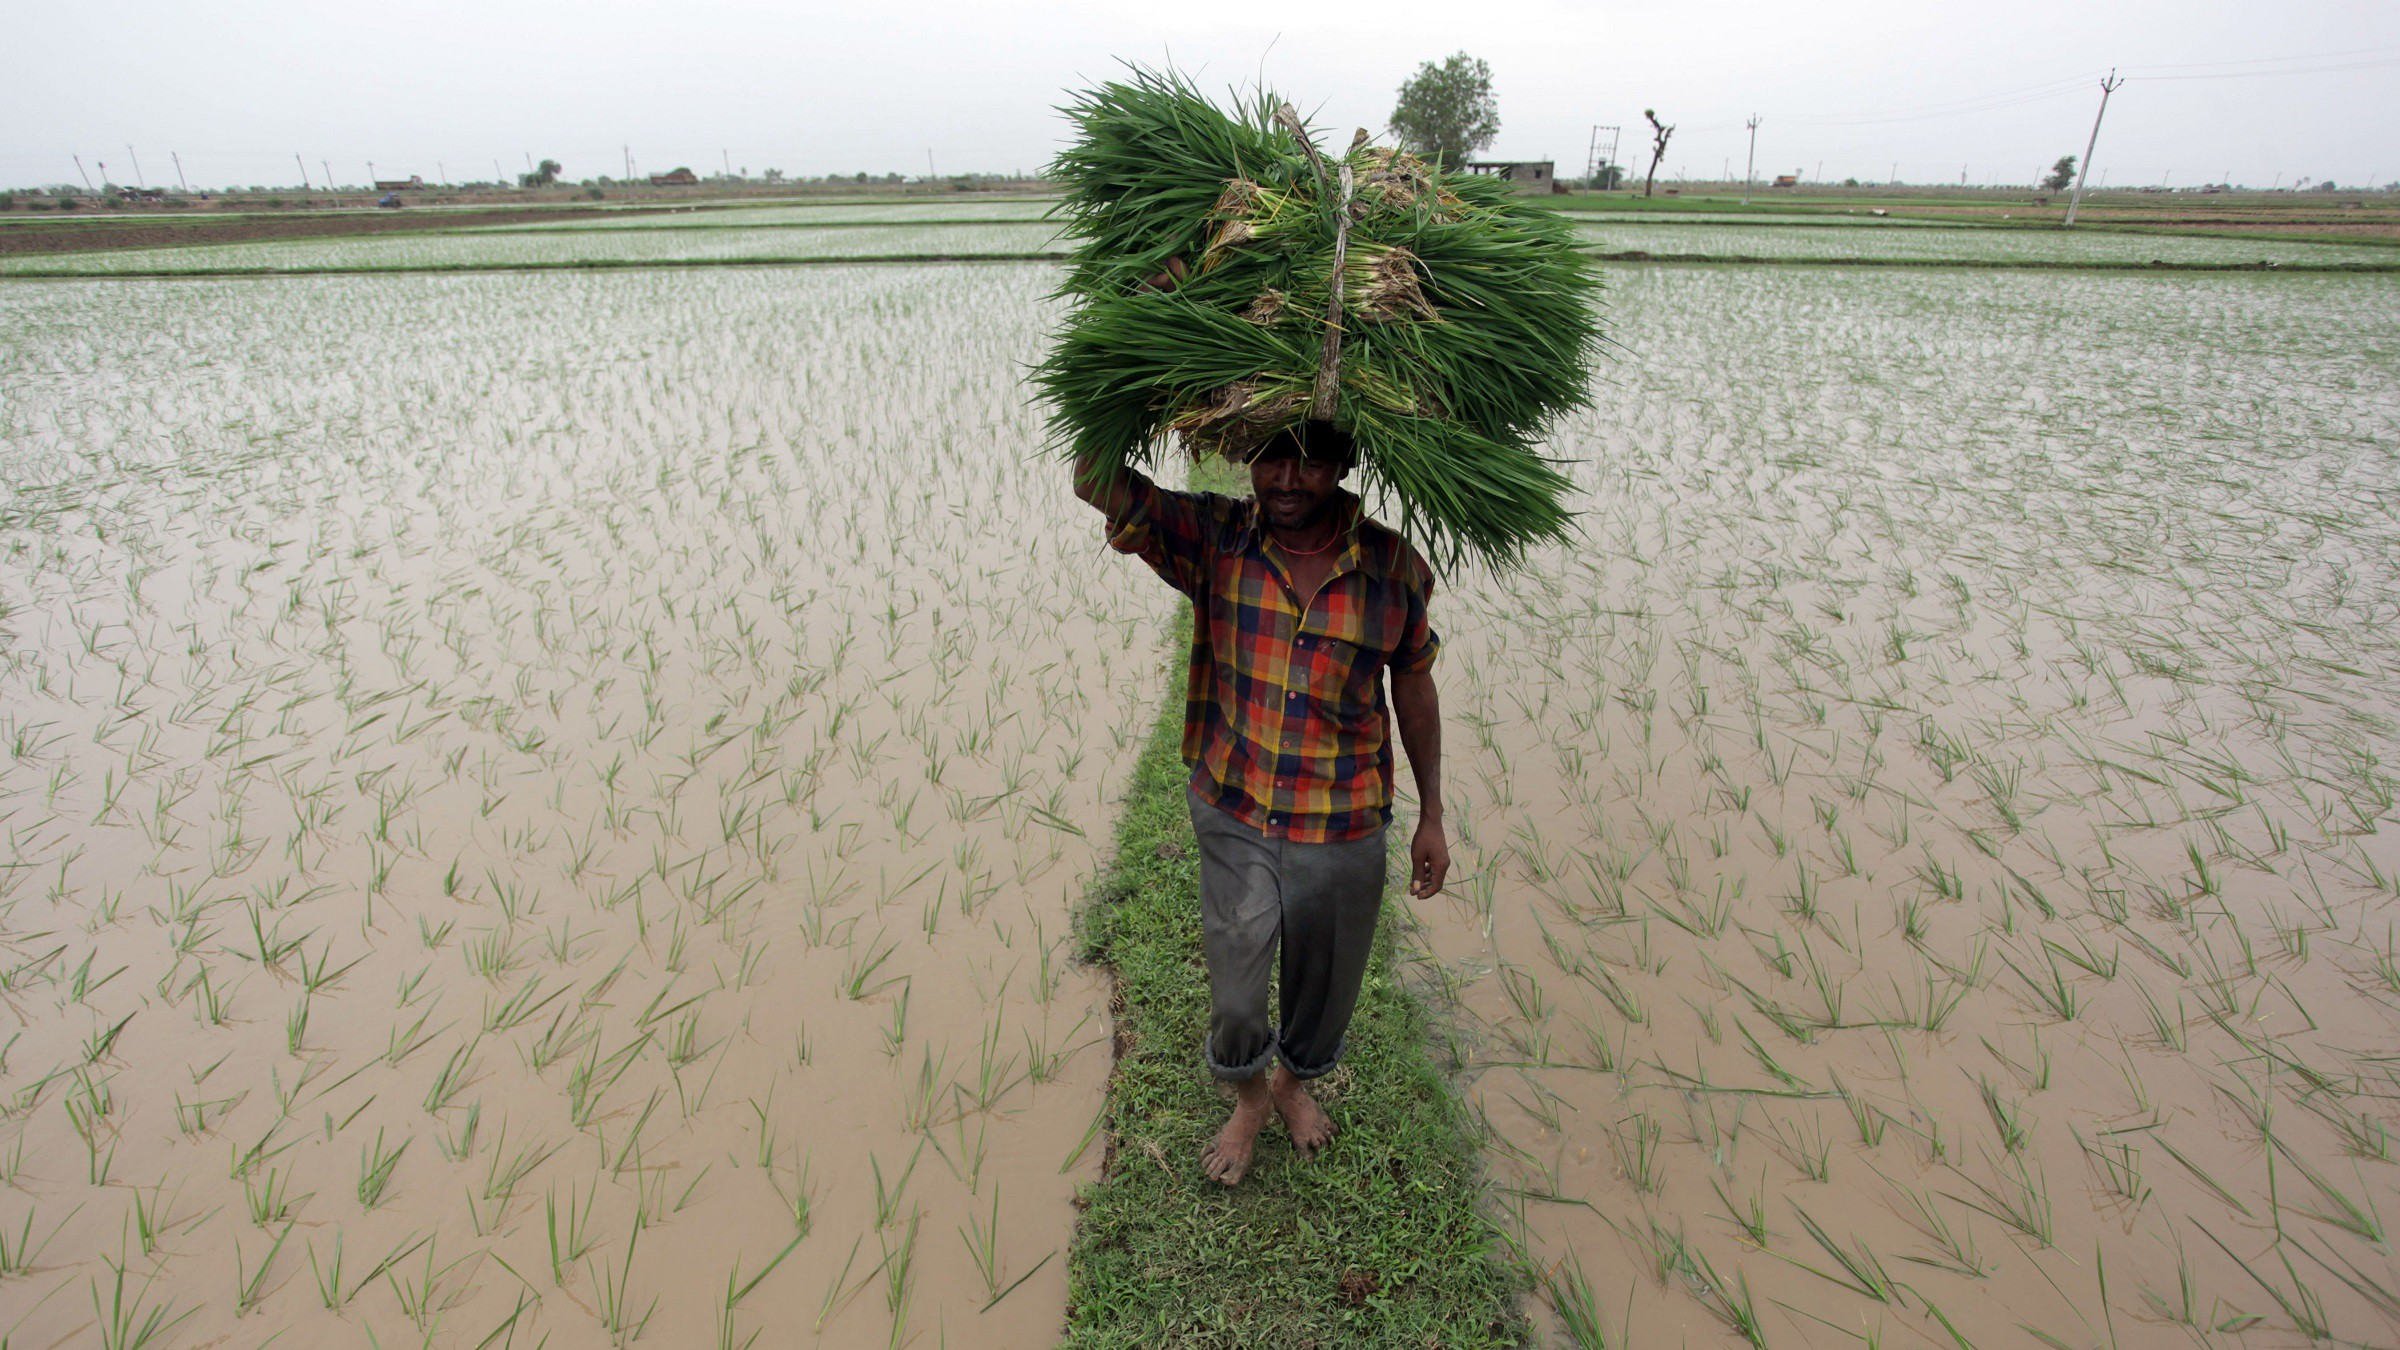 An Indian laborer carries paddy saplings to plant in a field on the outskirts of Ahmadabad, in the western Indian state of Gujarat, Saturday, July 19, 2014. After fears of possible drought, the monsoon finally hit most areas of the state, coming as a relief to farmers. (AP Photo/Ajit Solanki)